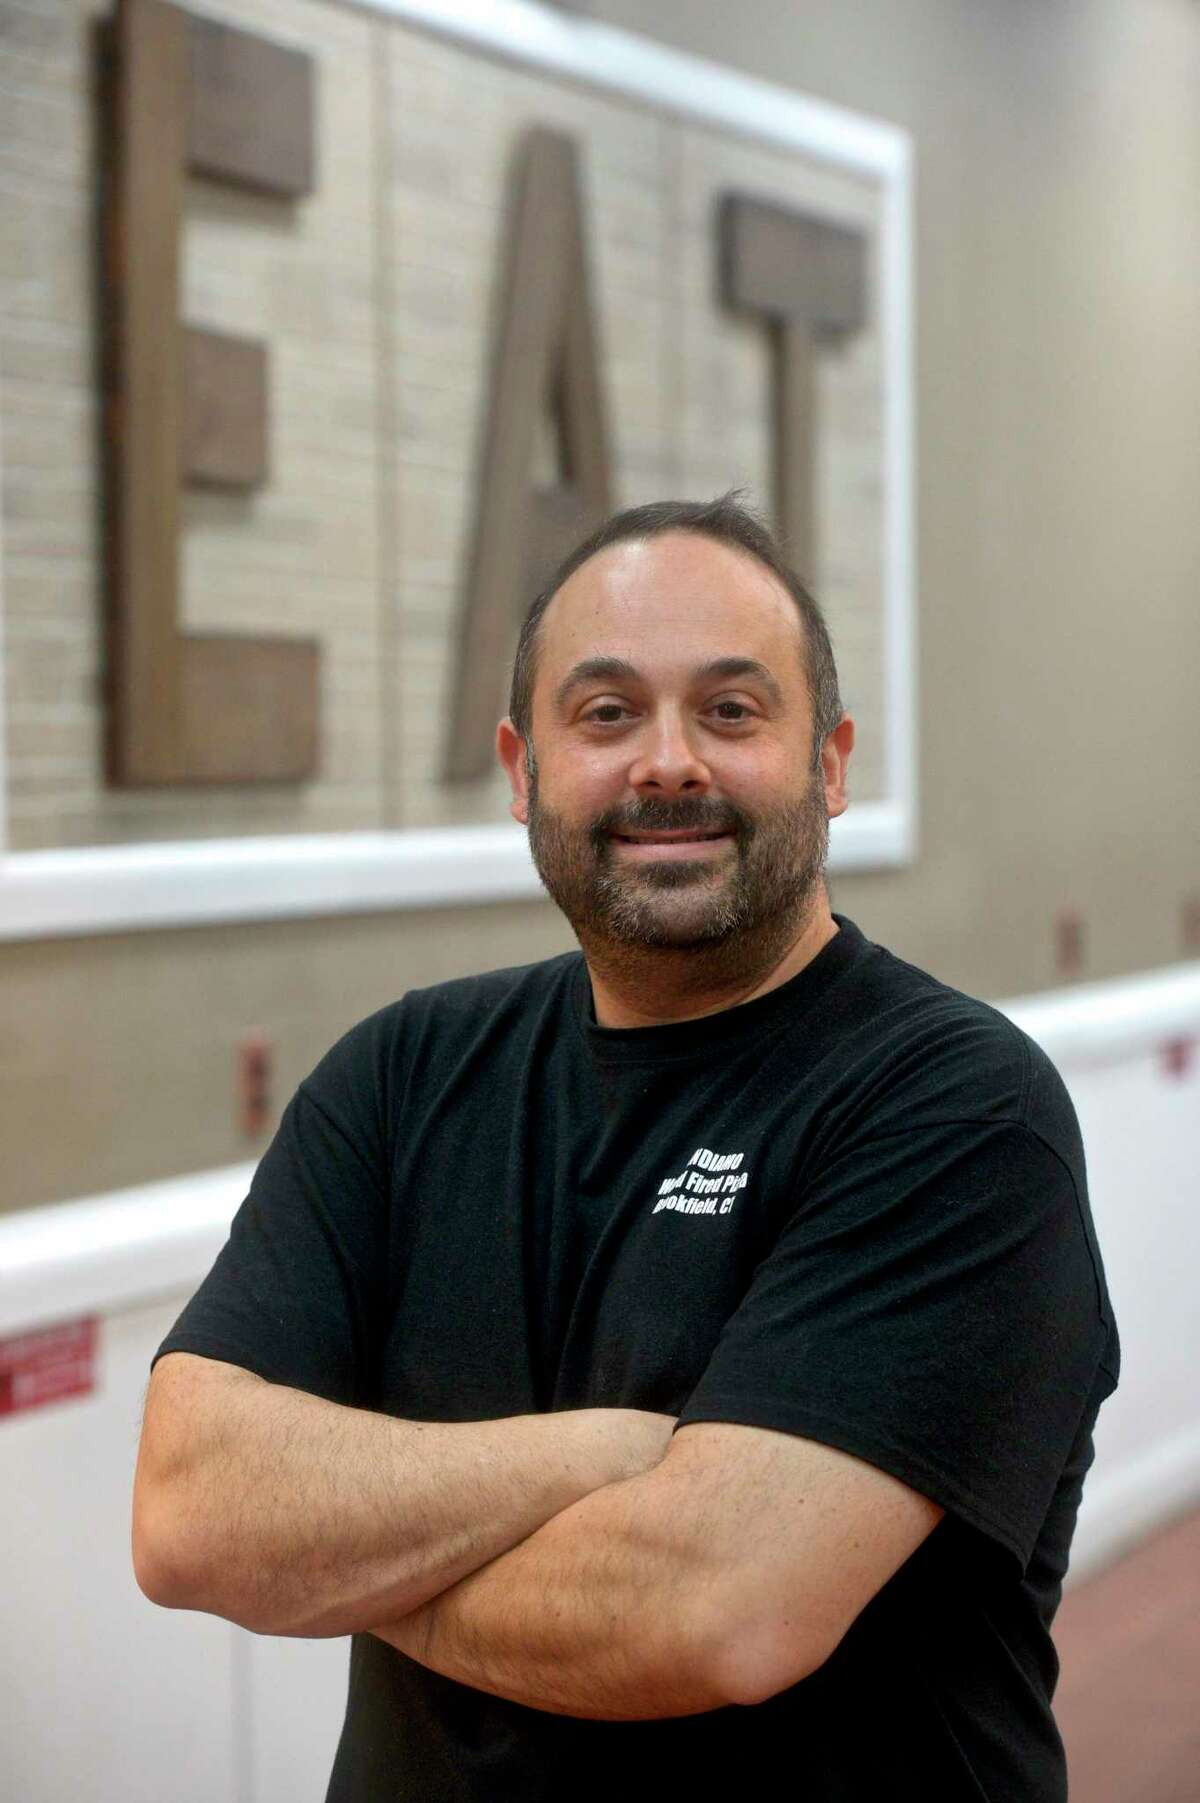 Franco DeRose and his wife Ana have opened Andiamo Wood-Fired Pizza in Candlewood Lake Plaza in Brookfield, Conn. Friday January 15, 2021.